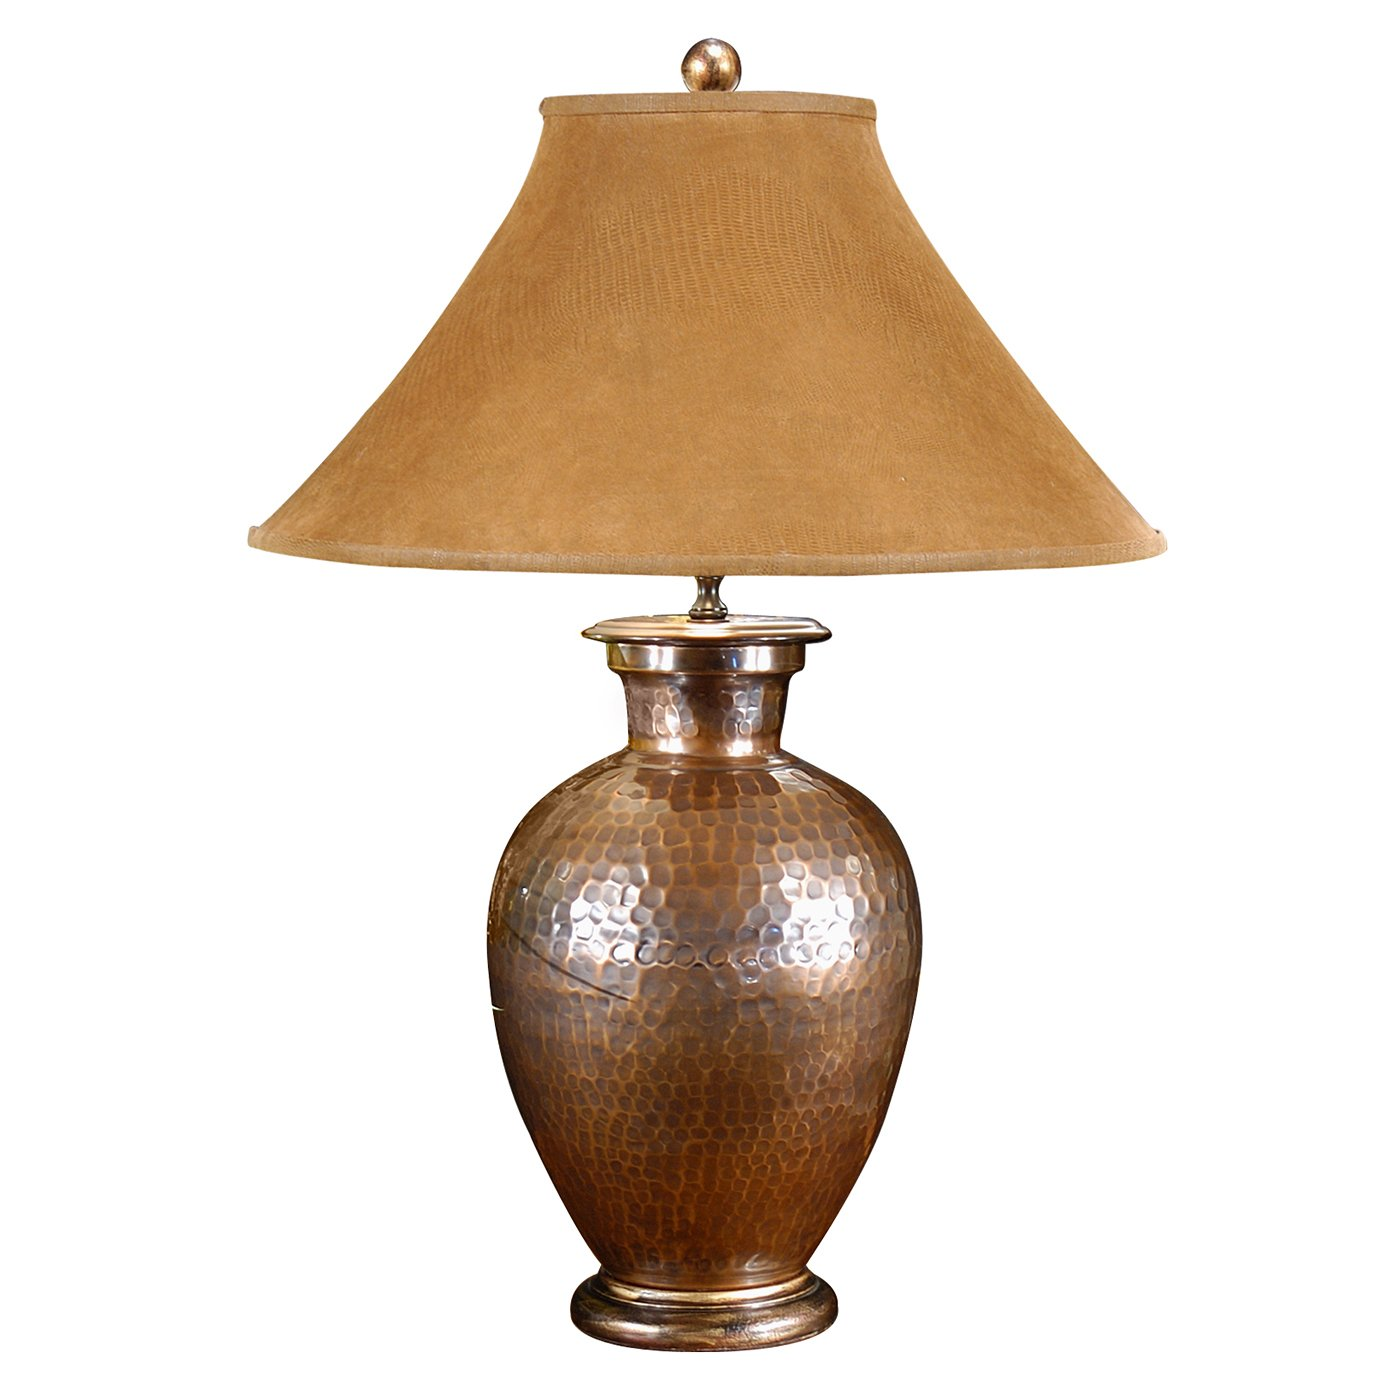 10 reasons to buy antique bronze table lamp warisan lighting for Images of table lamps